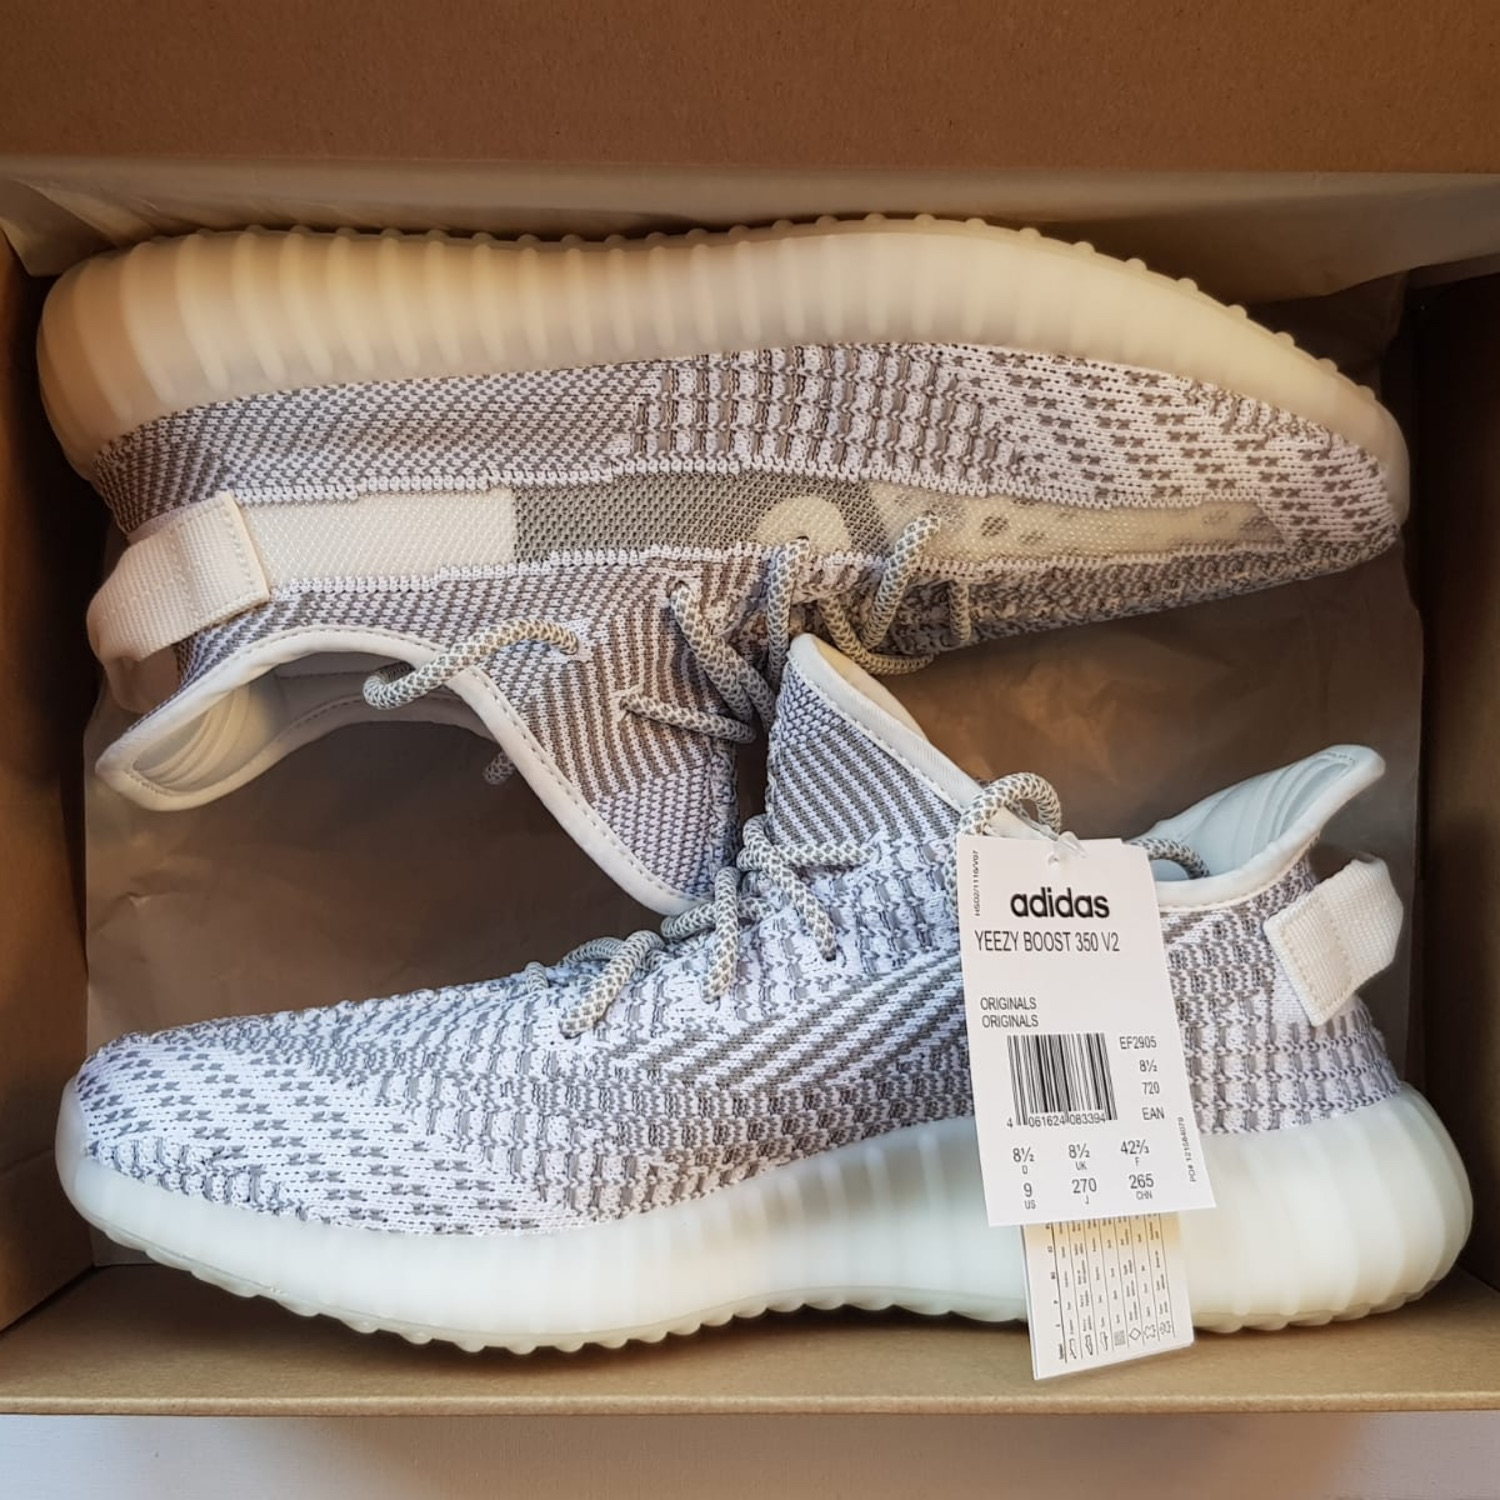 Yeezy Boost 350 V2 - Static Non-Reflective